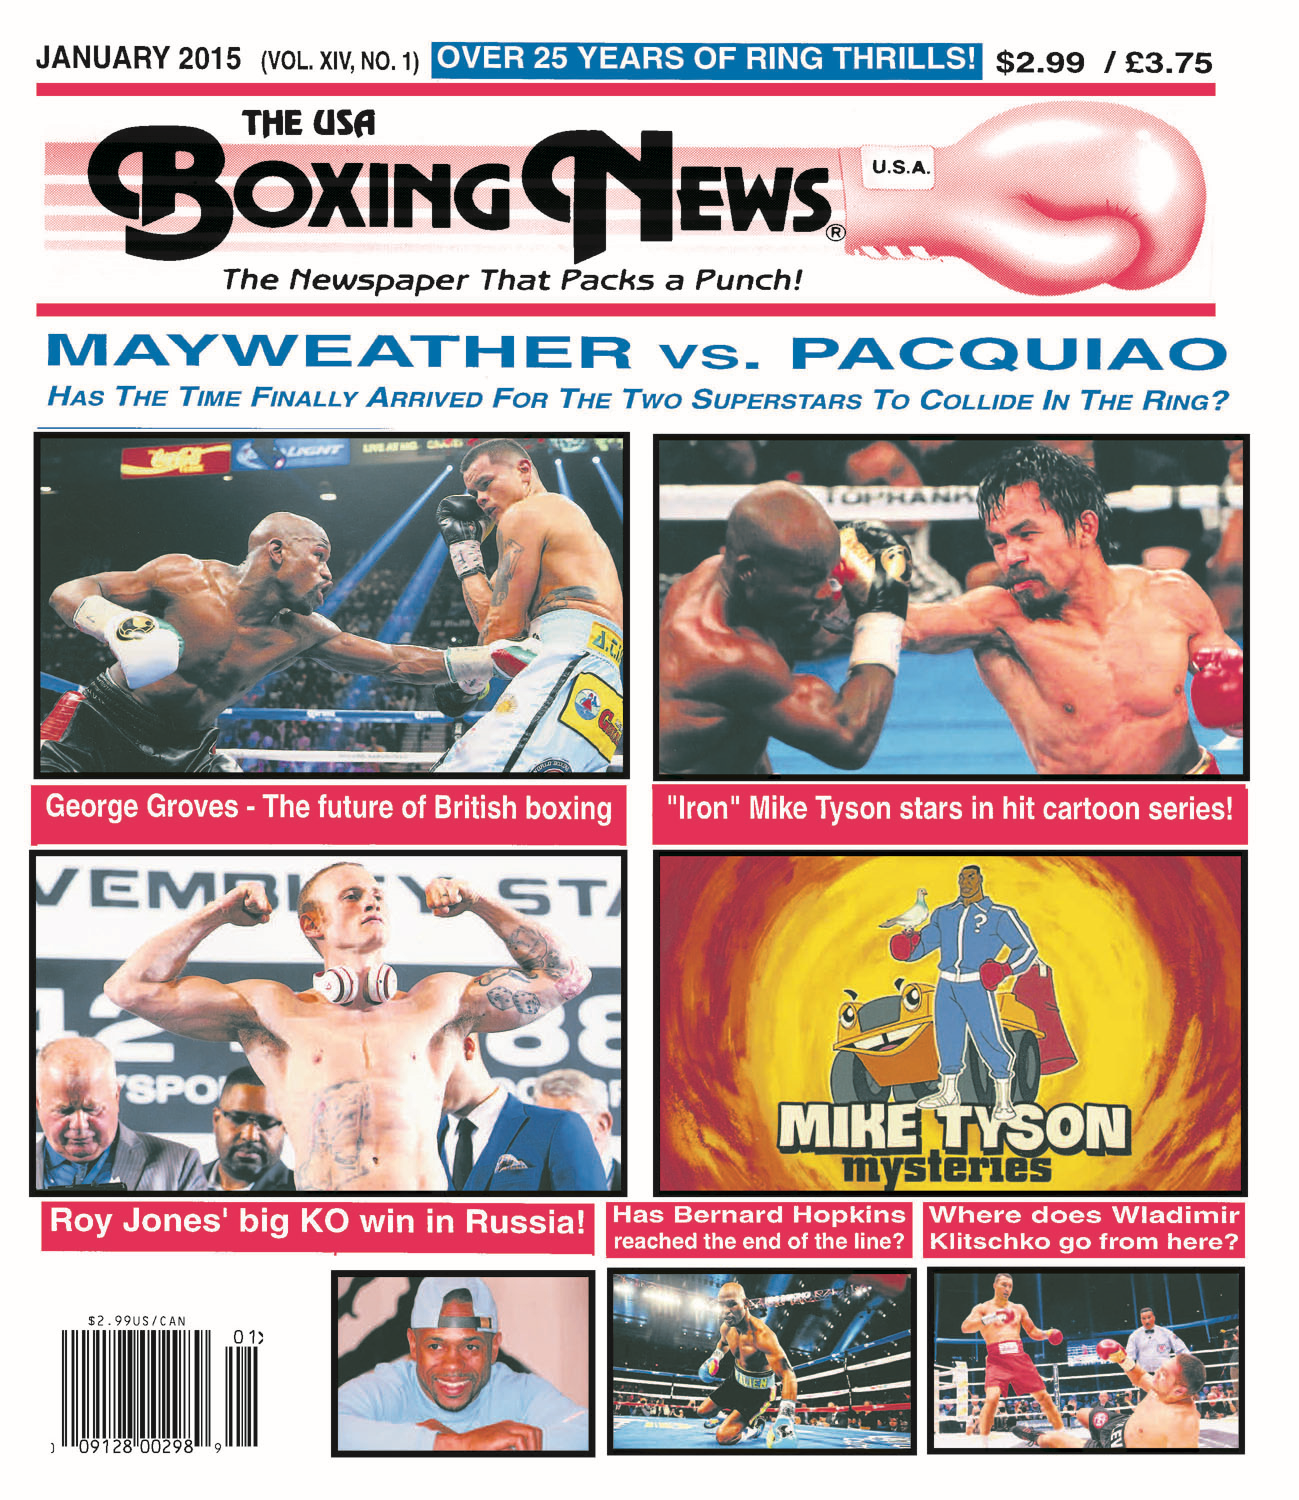 USA Boxing News Cover Jan 2015 (2)